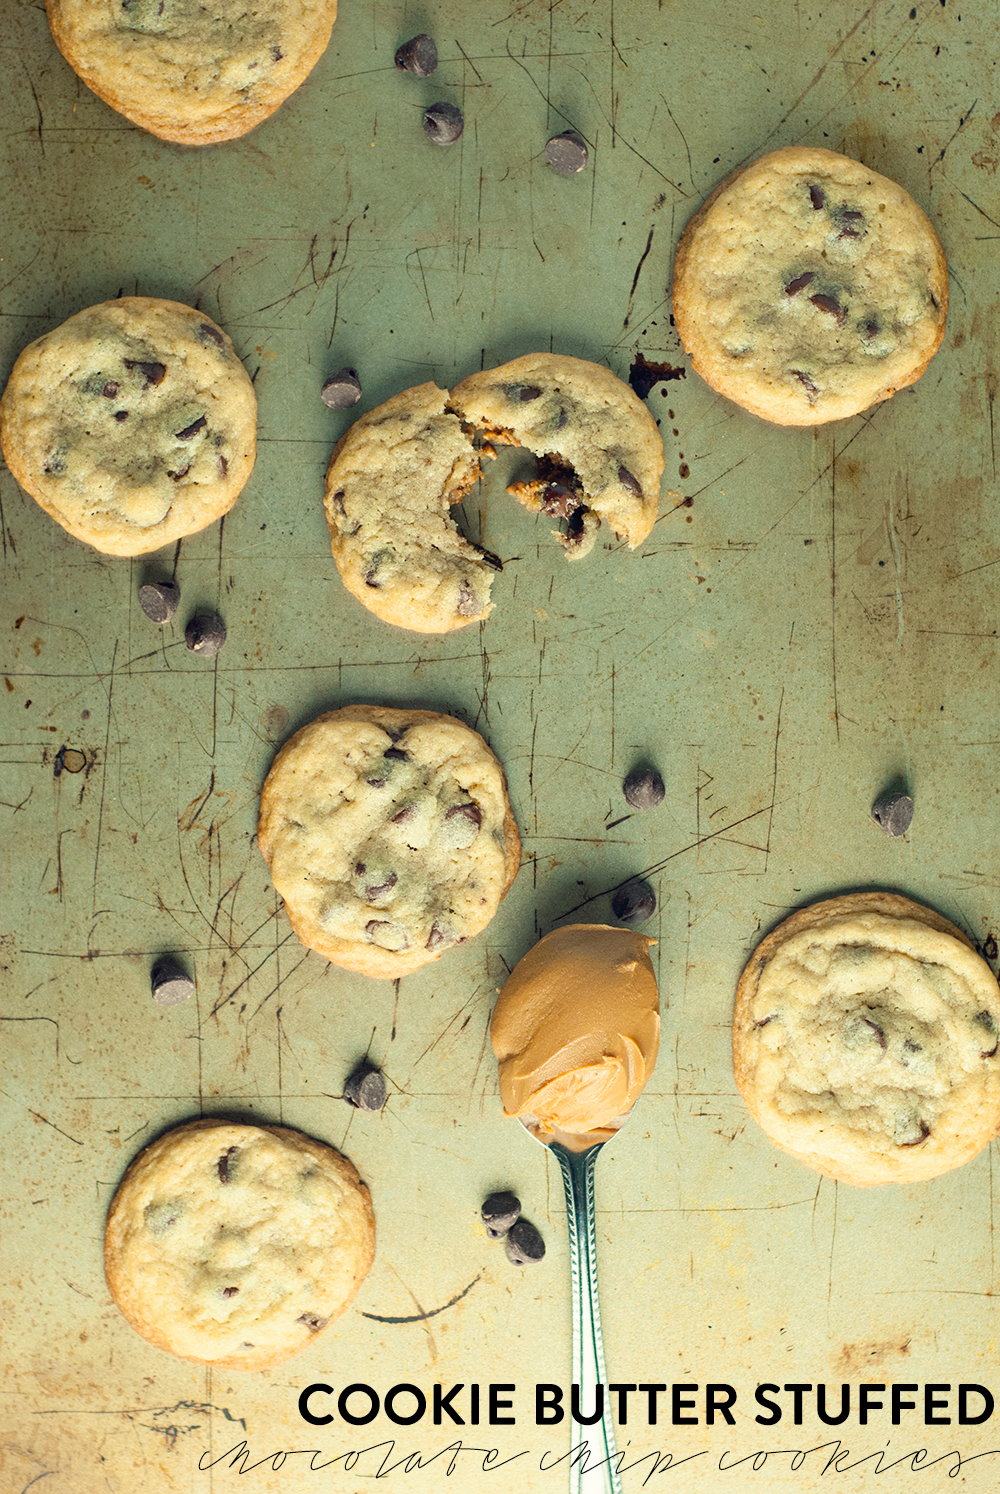 These cookie butter stuffed chocolate chip cookies are the real deal of delicious! Get the recipe and try today!